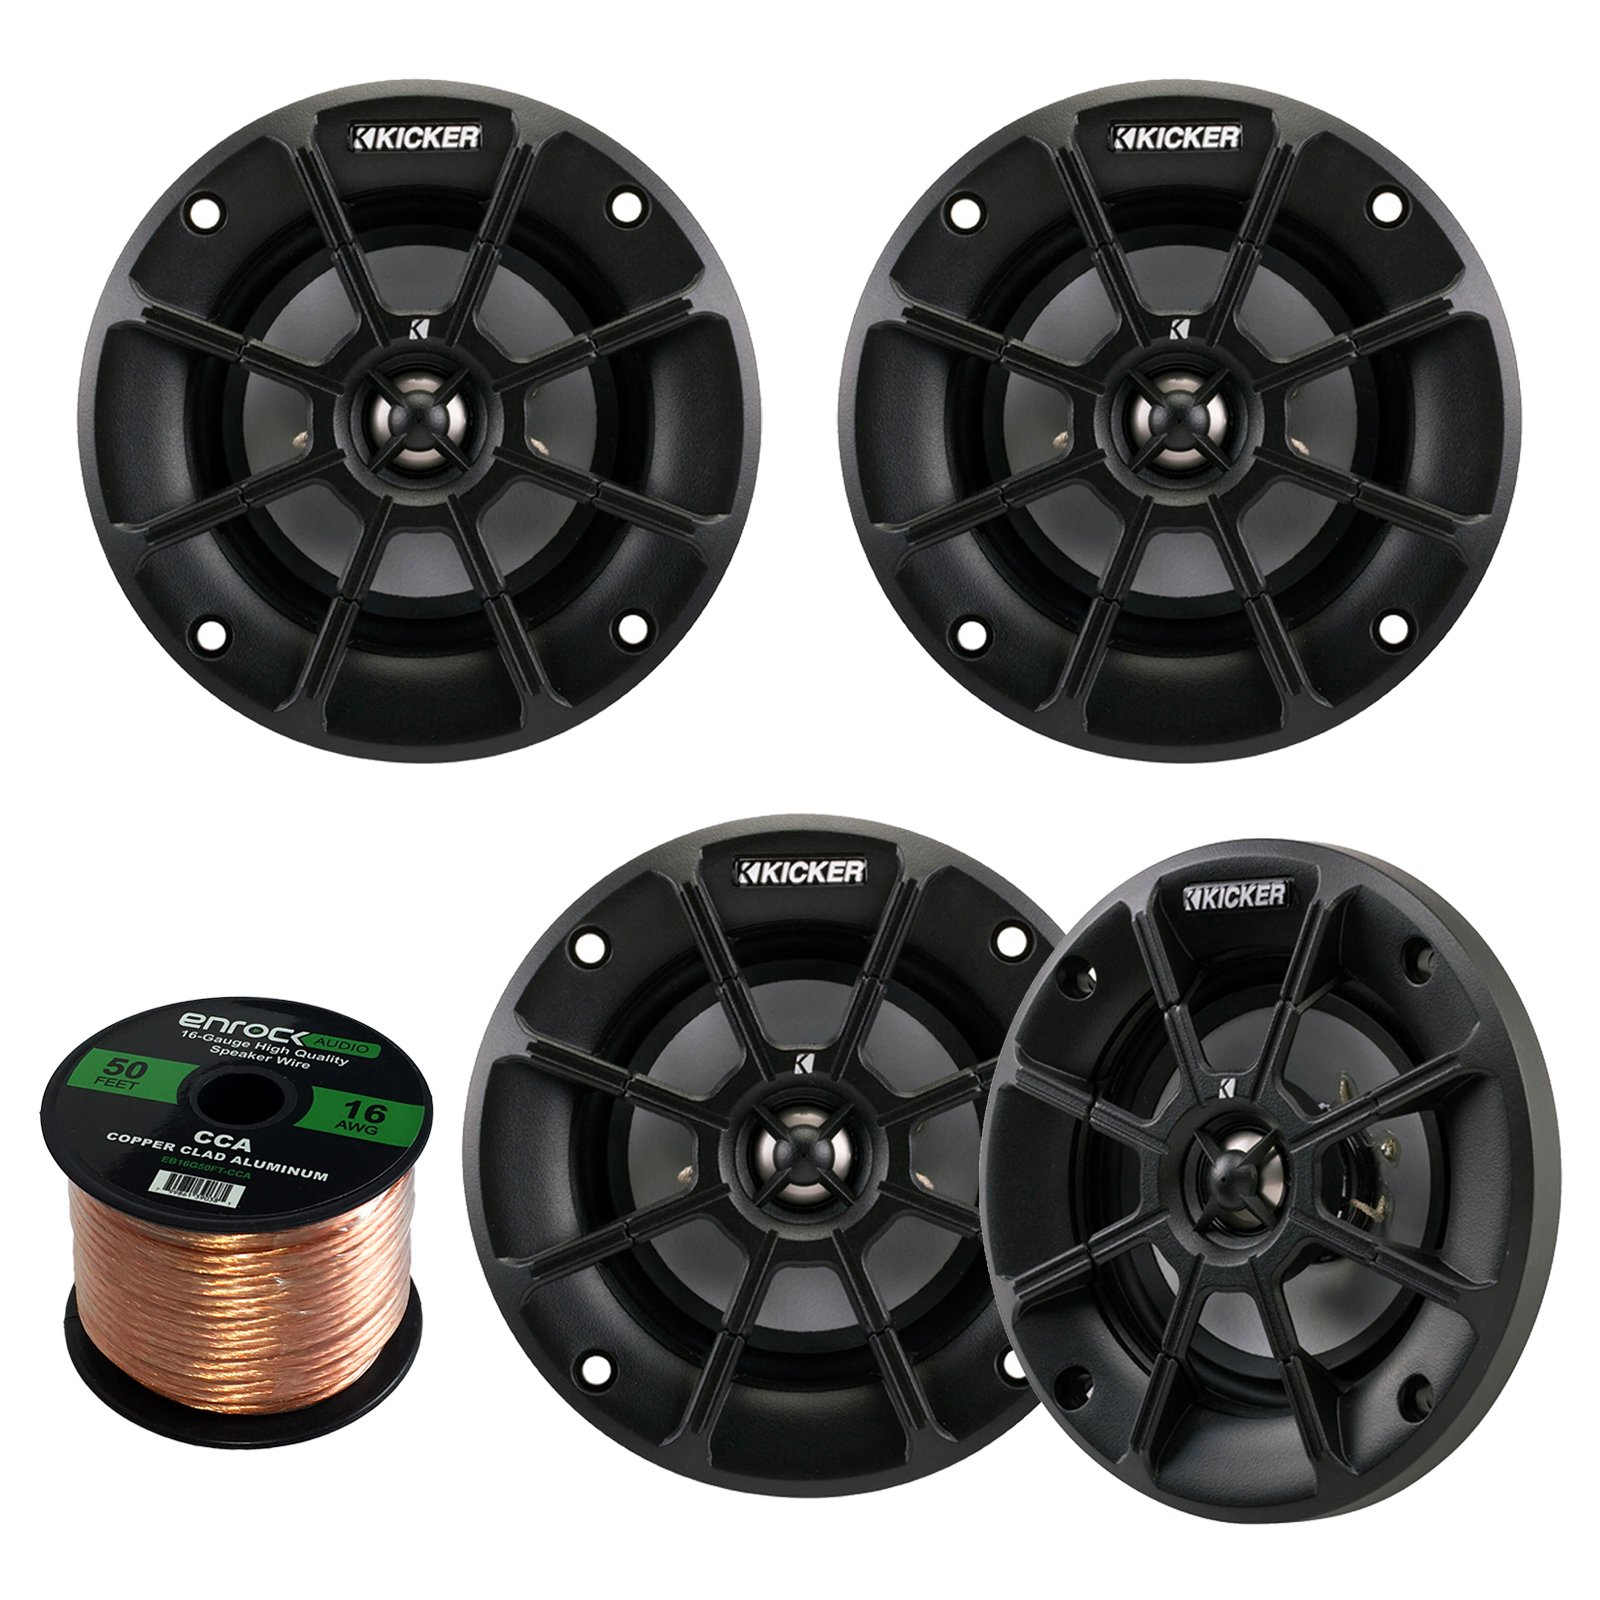 4 X Kicker 40PS42 4'' Inch Weather-Proof Powersports Vehicles 2-Way 2-Ohm Coaxial ATV, Motorcycle, Marine, Boat, Speakers (2 Pair) Bundle With Enrock 16g 50 Feet Speaker Wire by Enrock Kicker